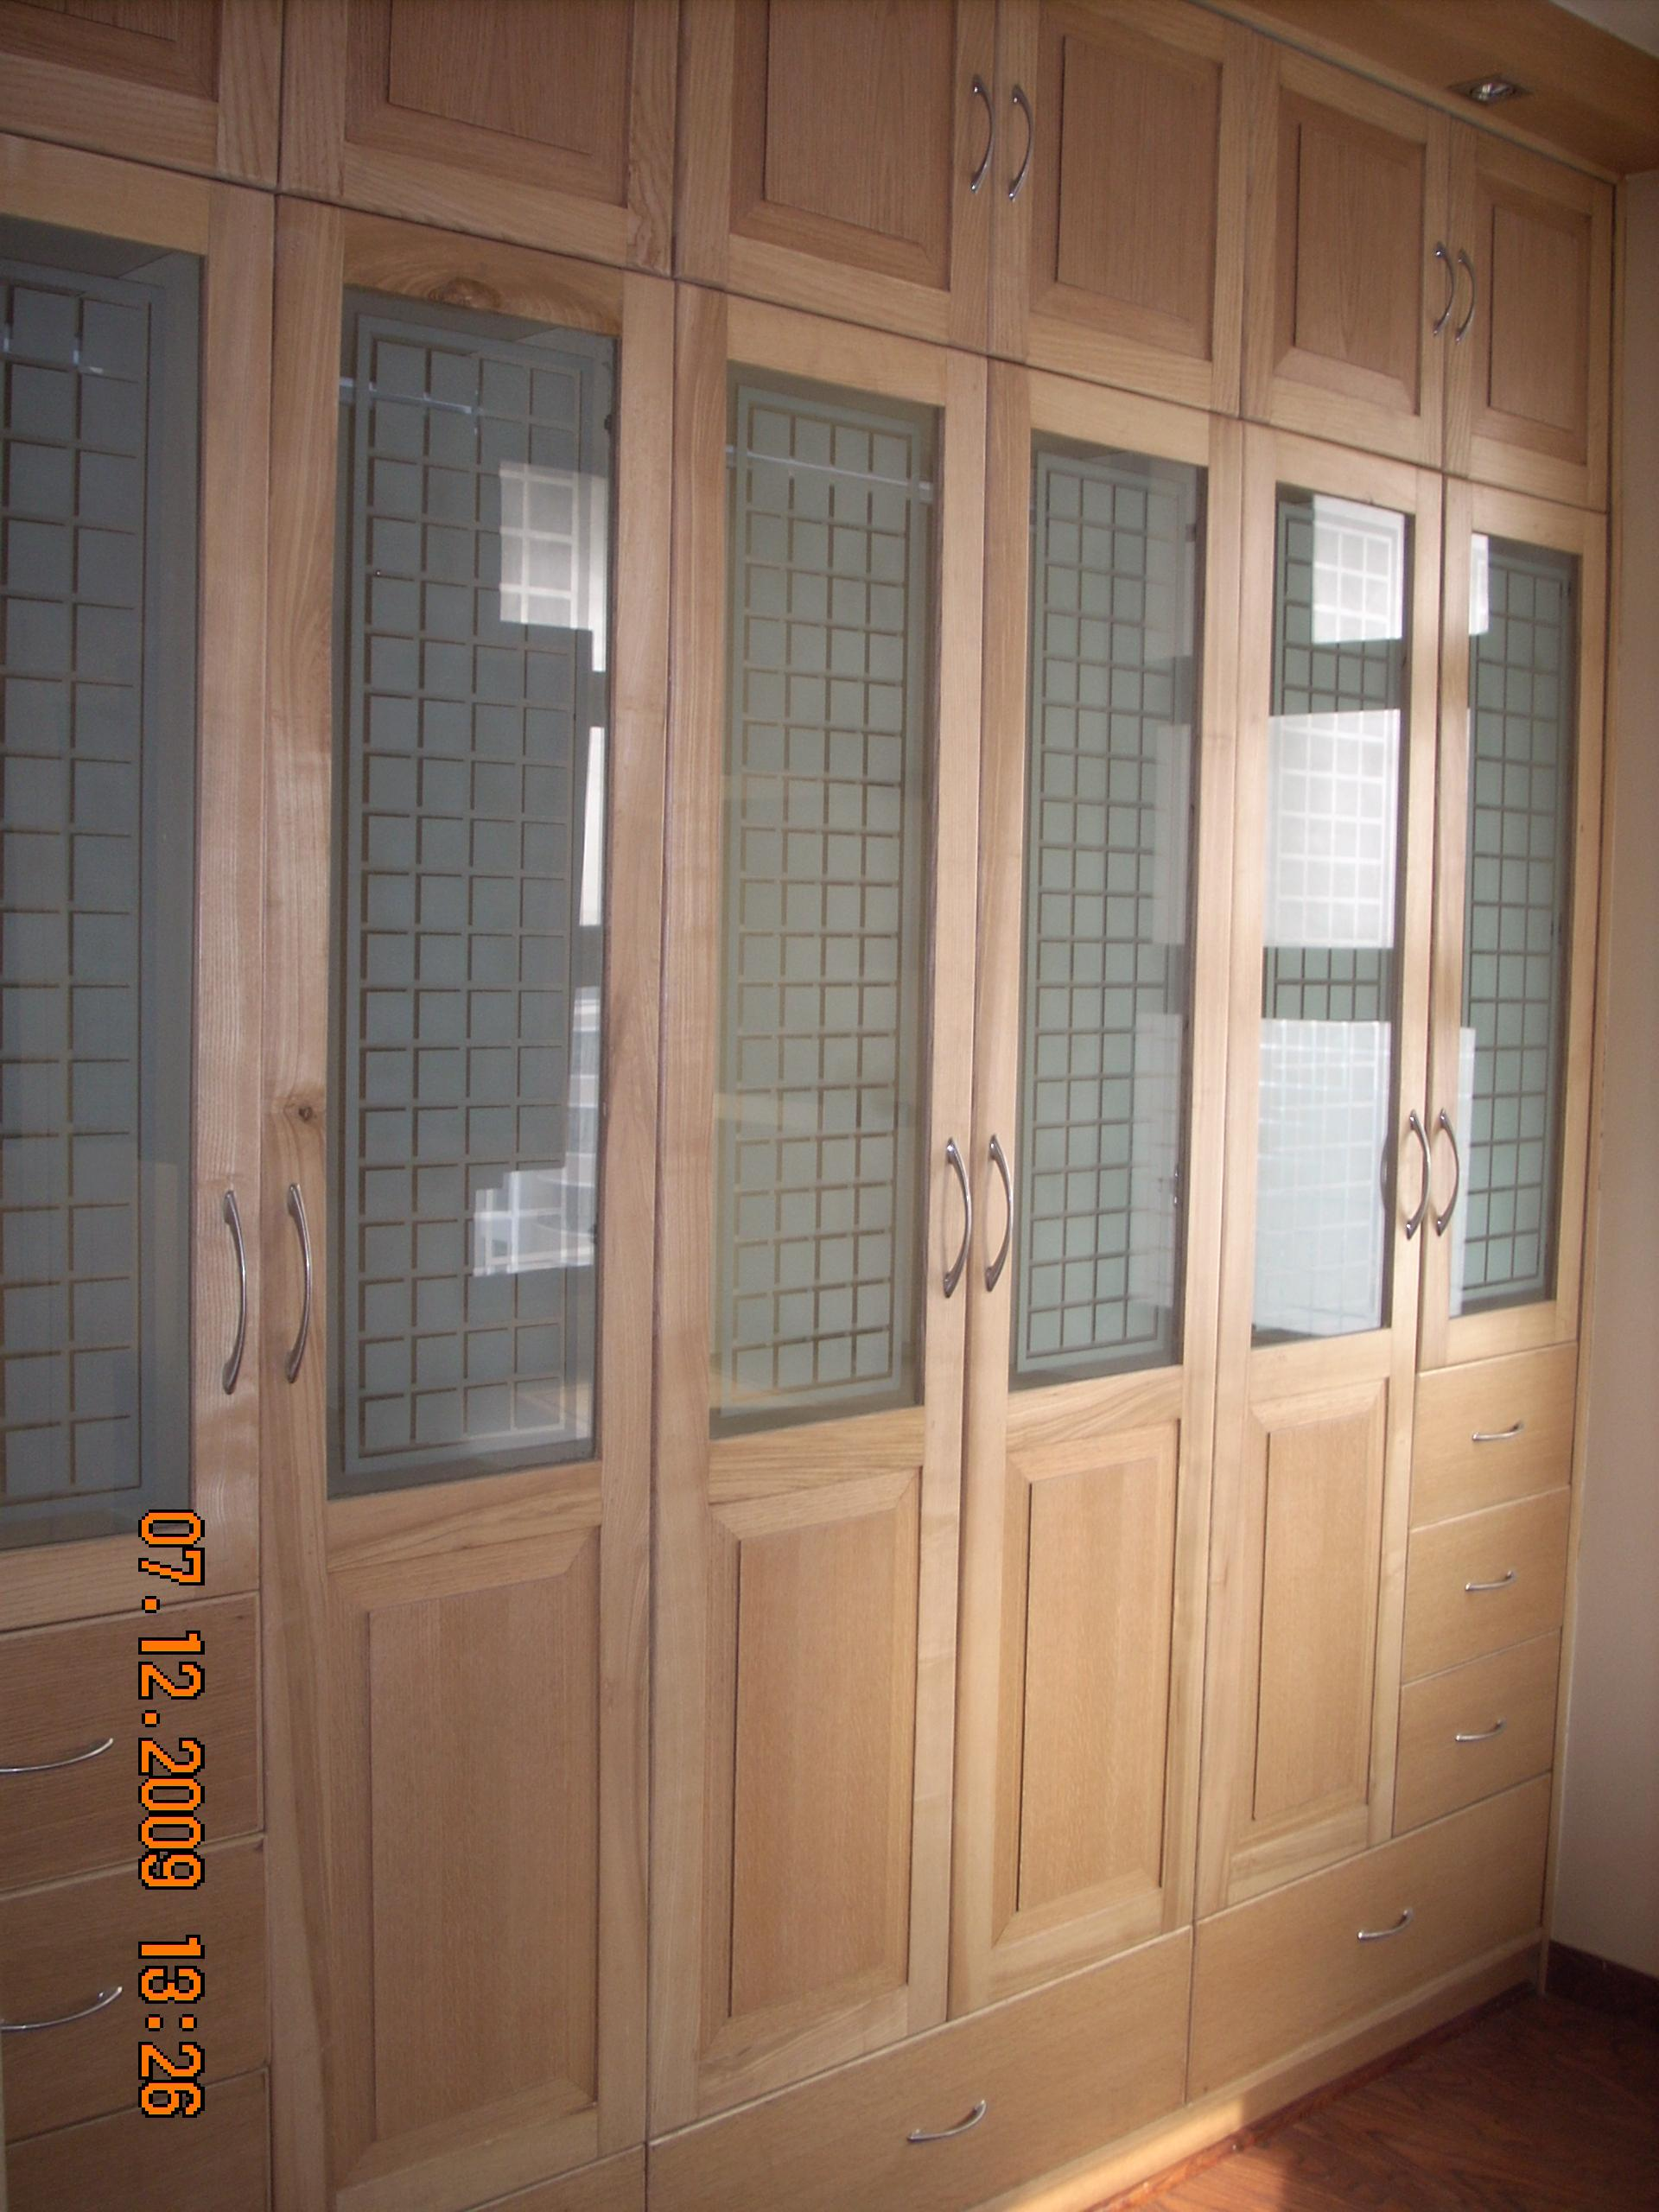 Woodworking plans window shutter designs in kerala pdf plans for Window glass design in kerala